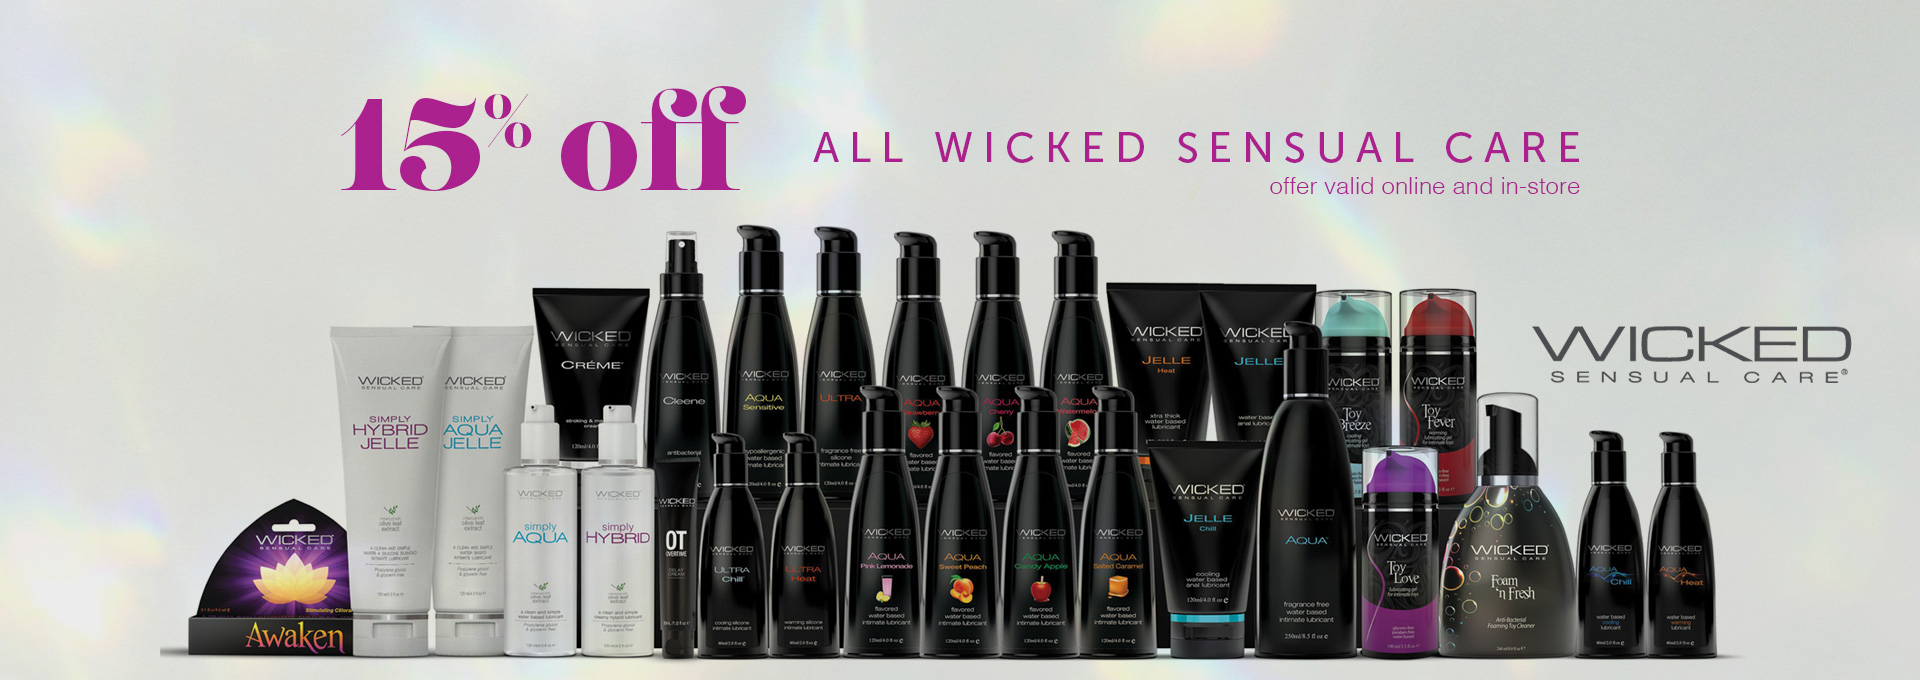 15% OFF All Wicked Sensual Care Products